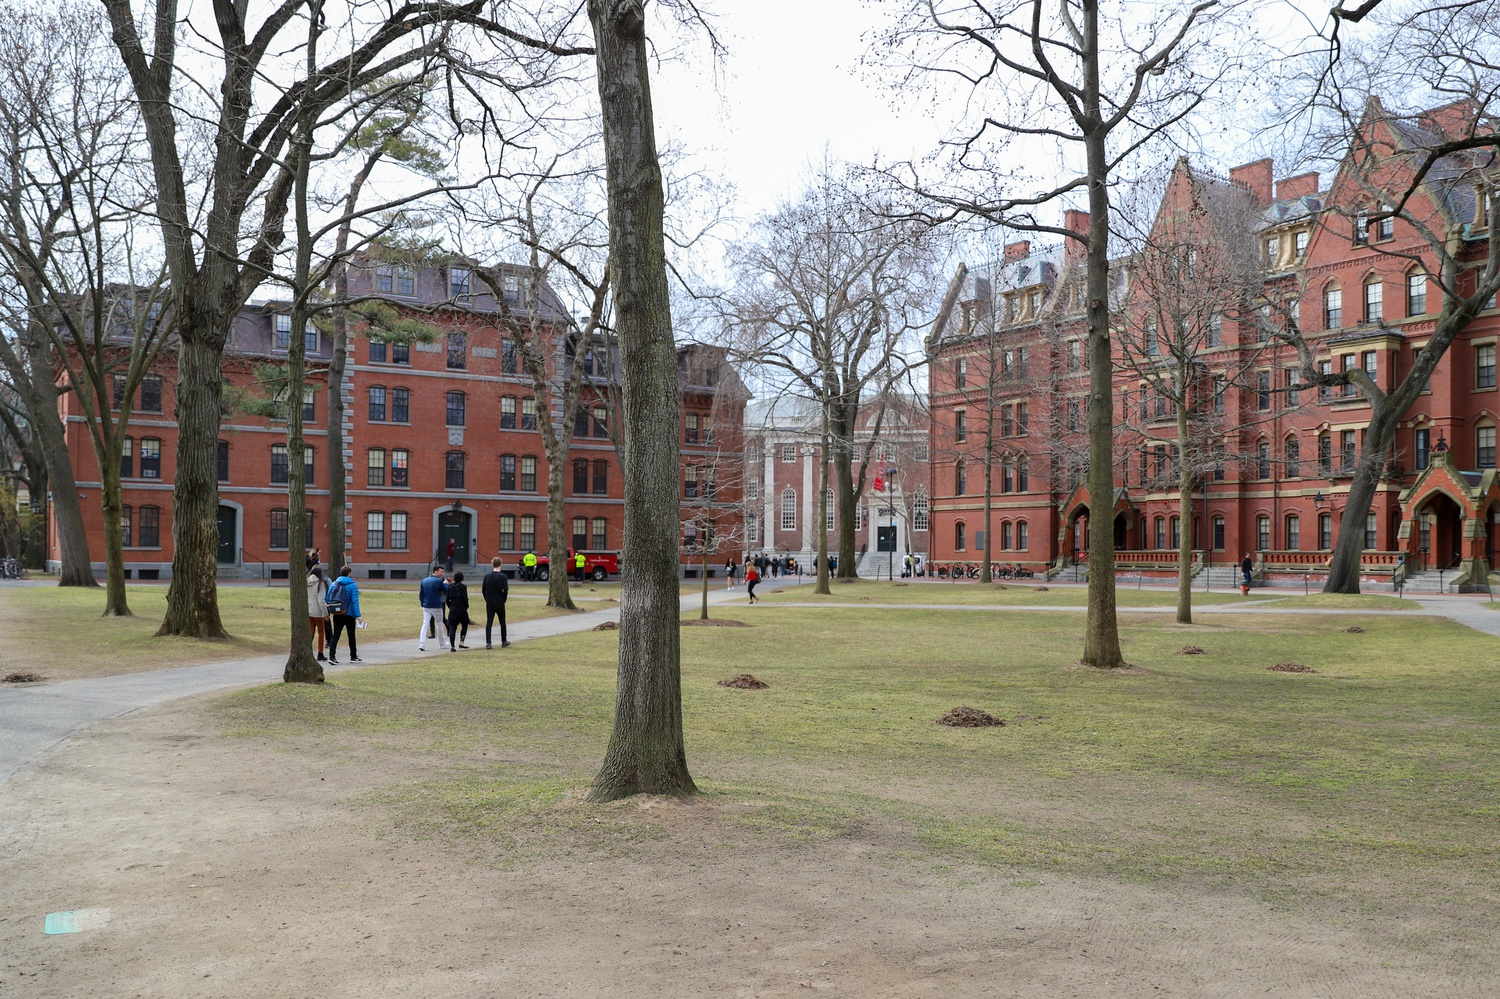 Harvard College's announcement of the postponement of Housing Day, an annual Harvard tradition, has left first-year students angry and uncertain of when they will receive House assignments.